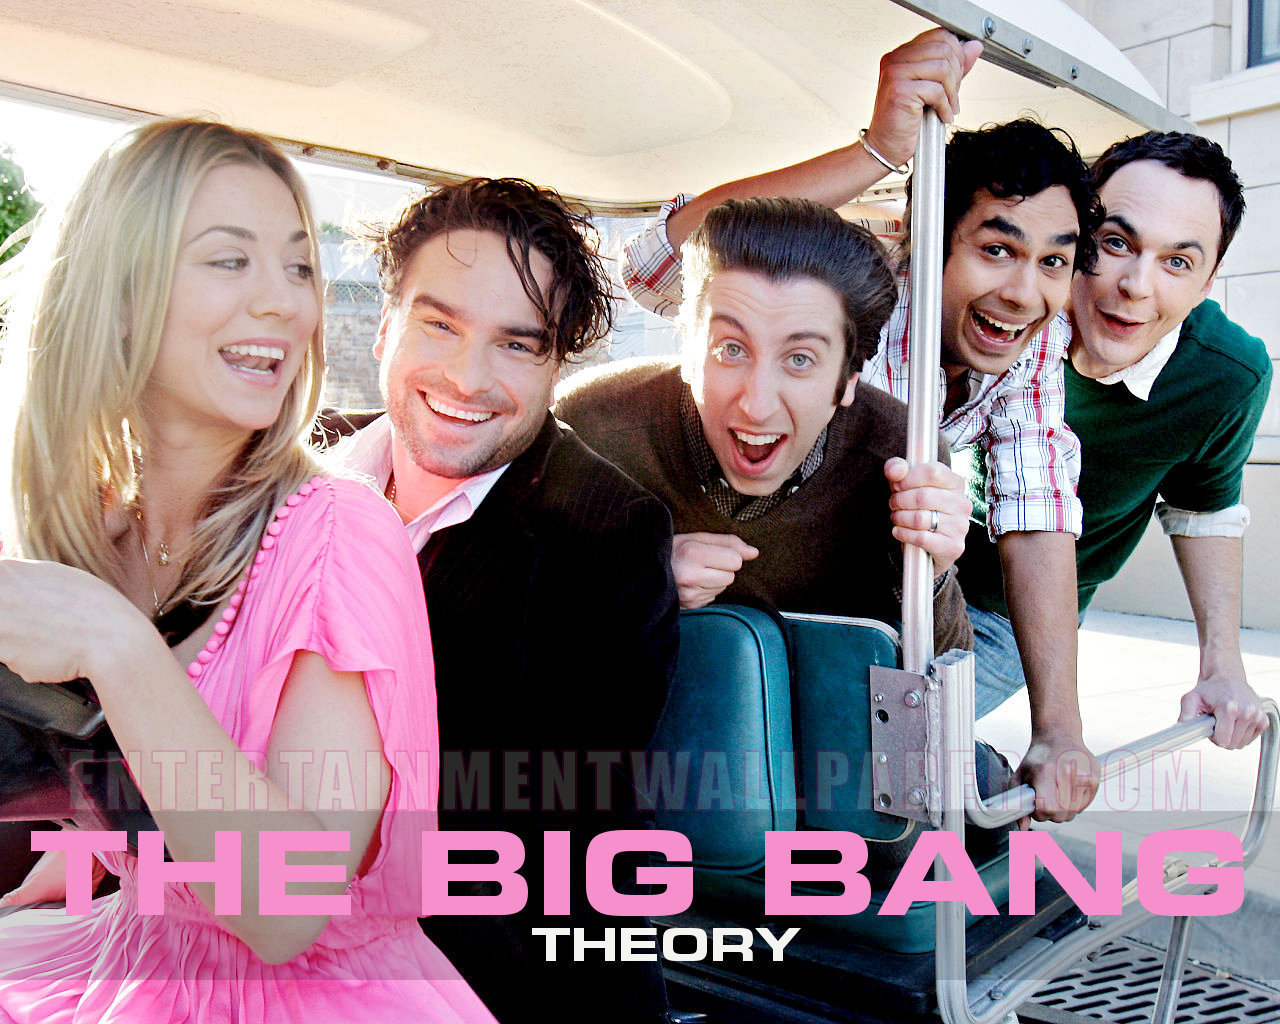 gm520 big bang theory The reason for the end of 'the big bang theory' has finally been revealed.